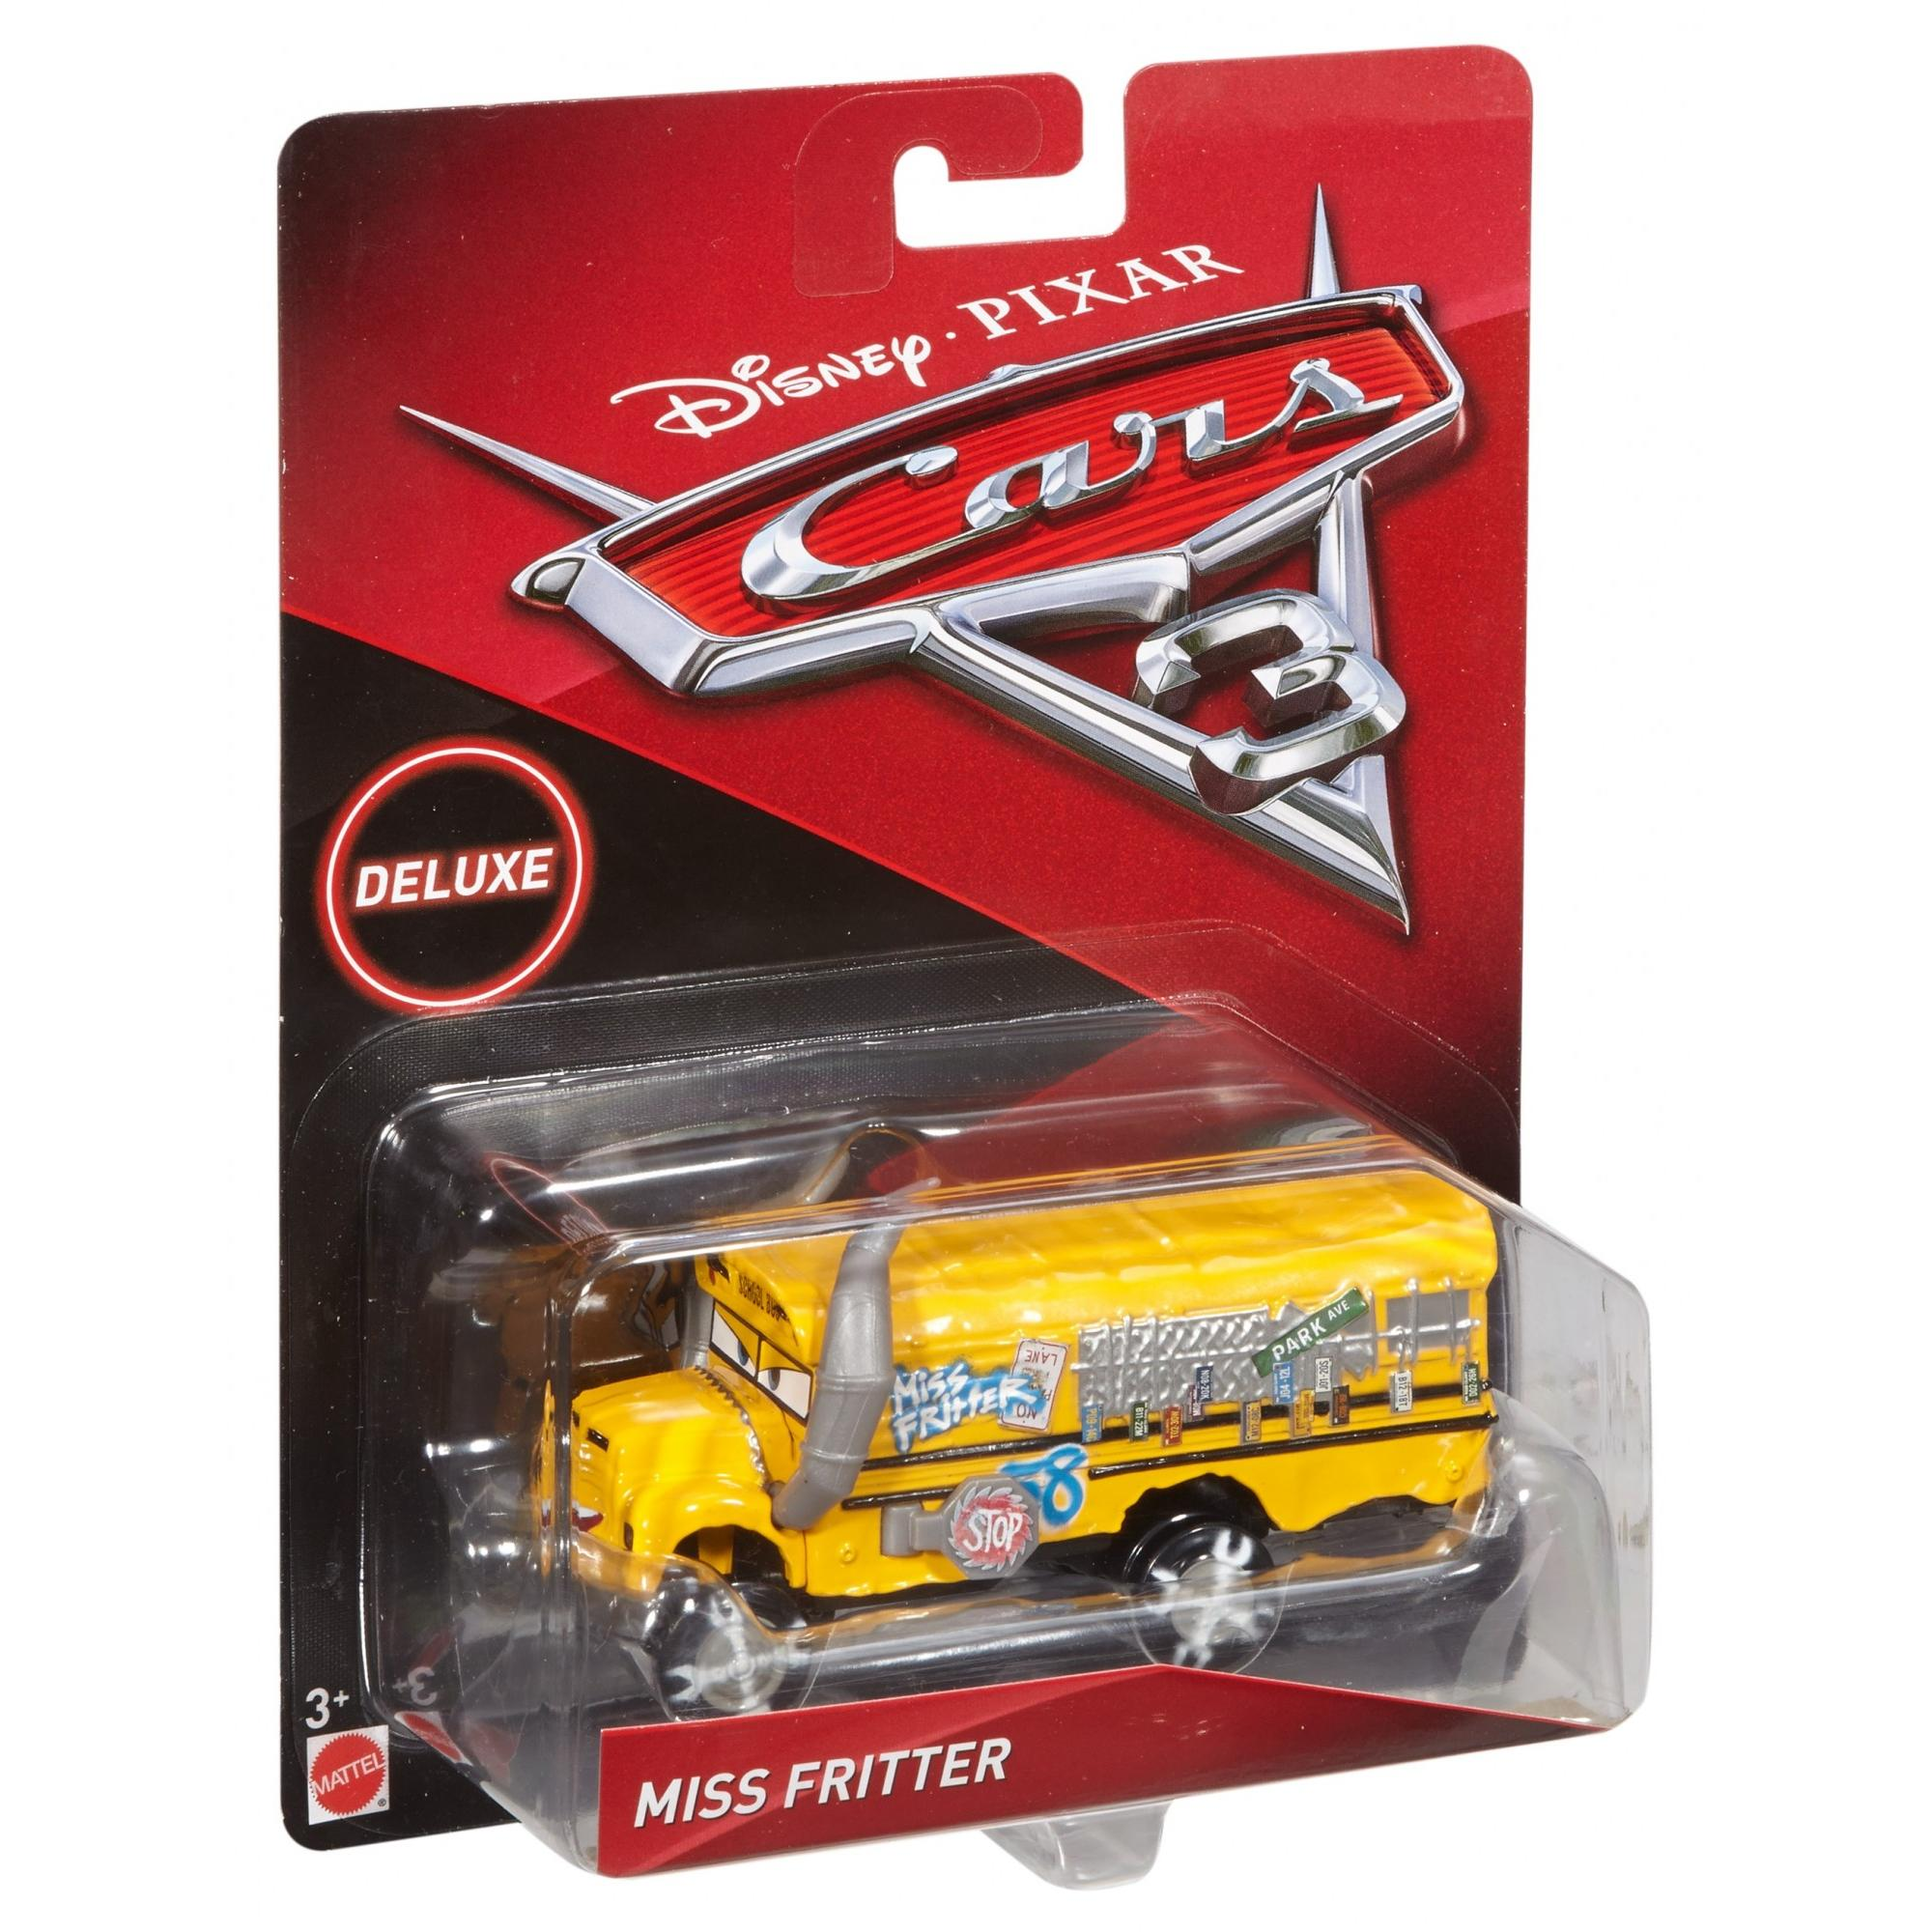 Disney Pixar Cars 3 Deluxe Miss Fritter Die Cast Character Vehicle